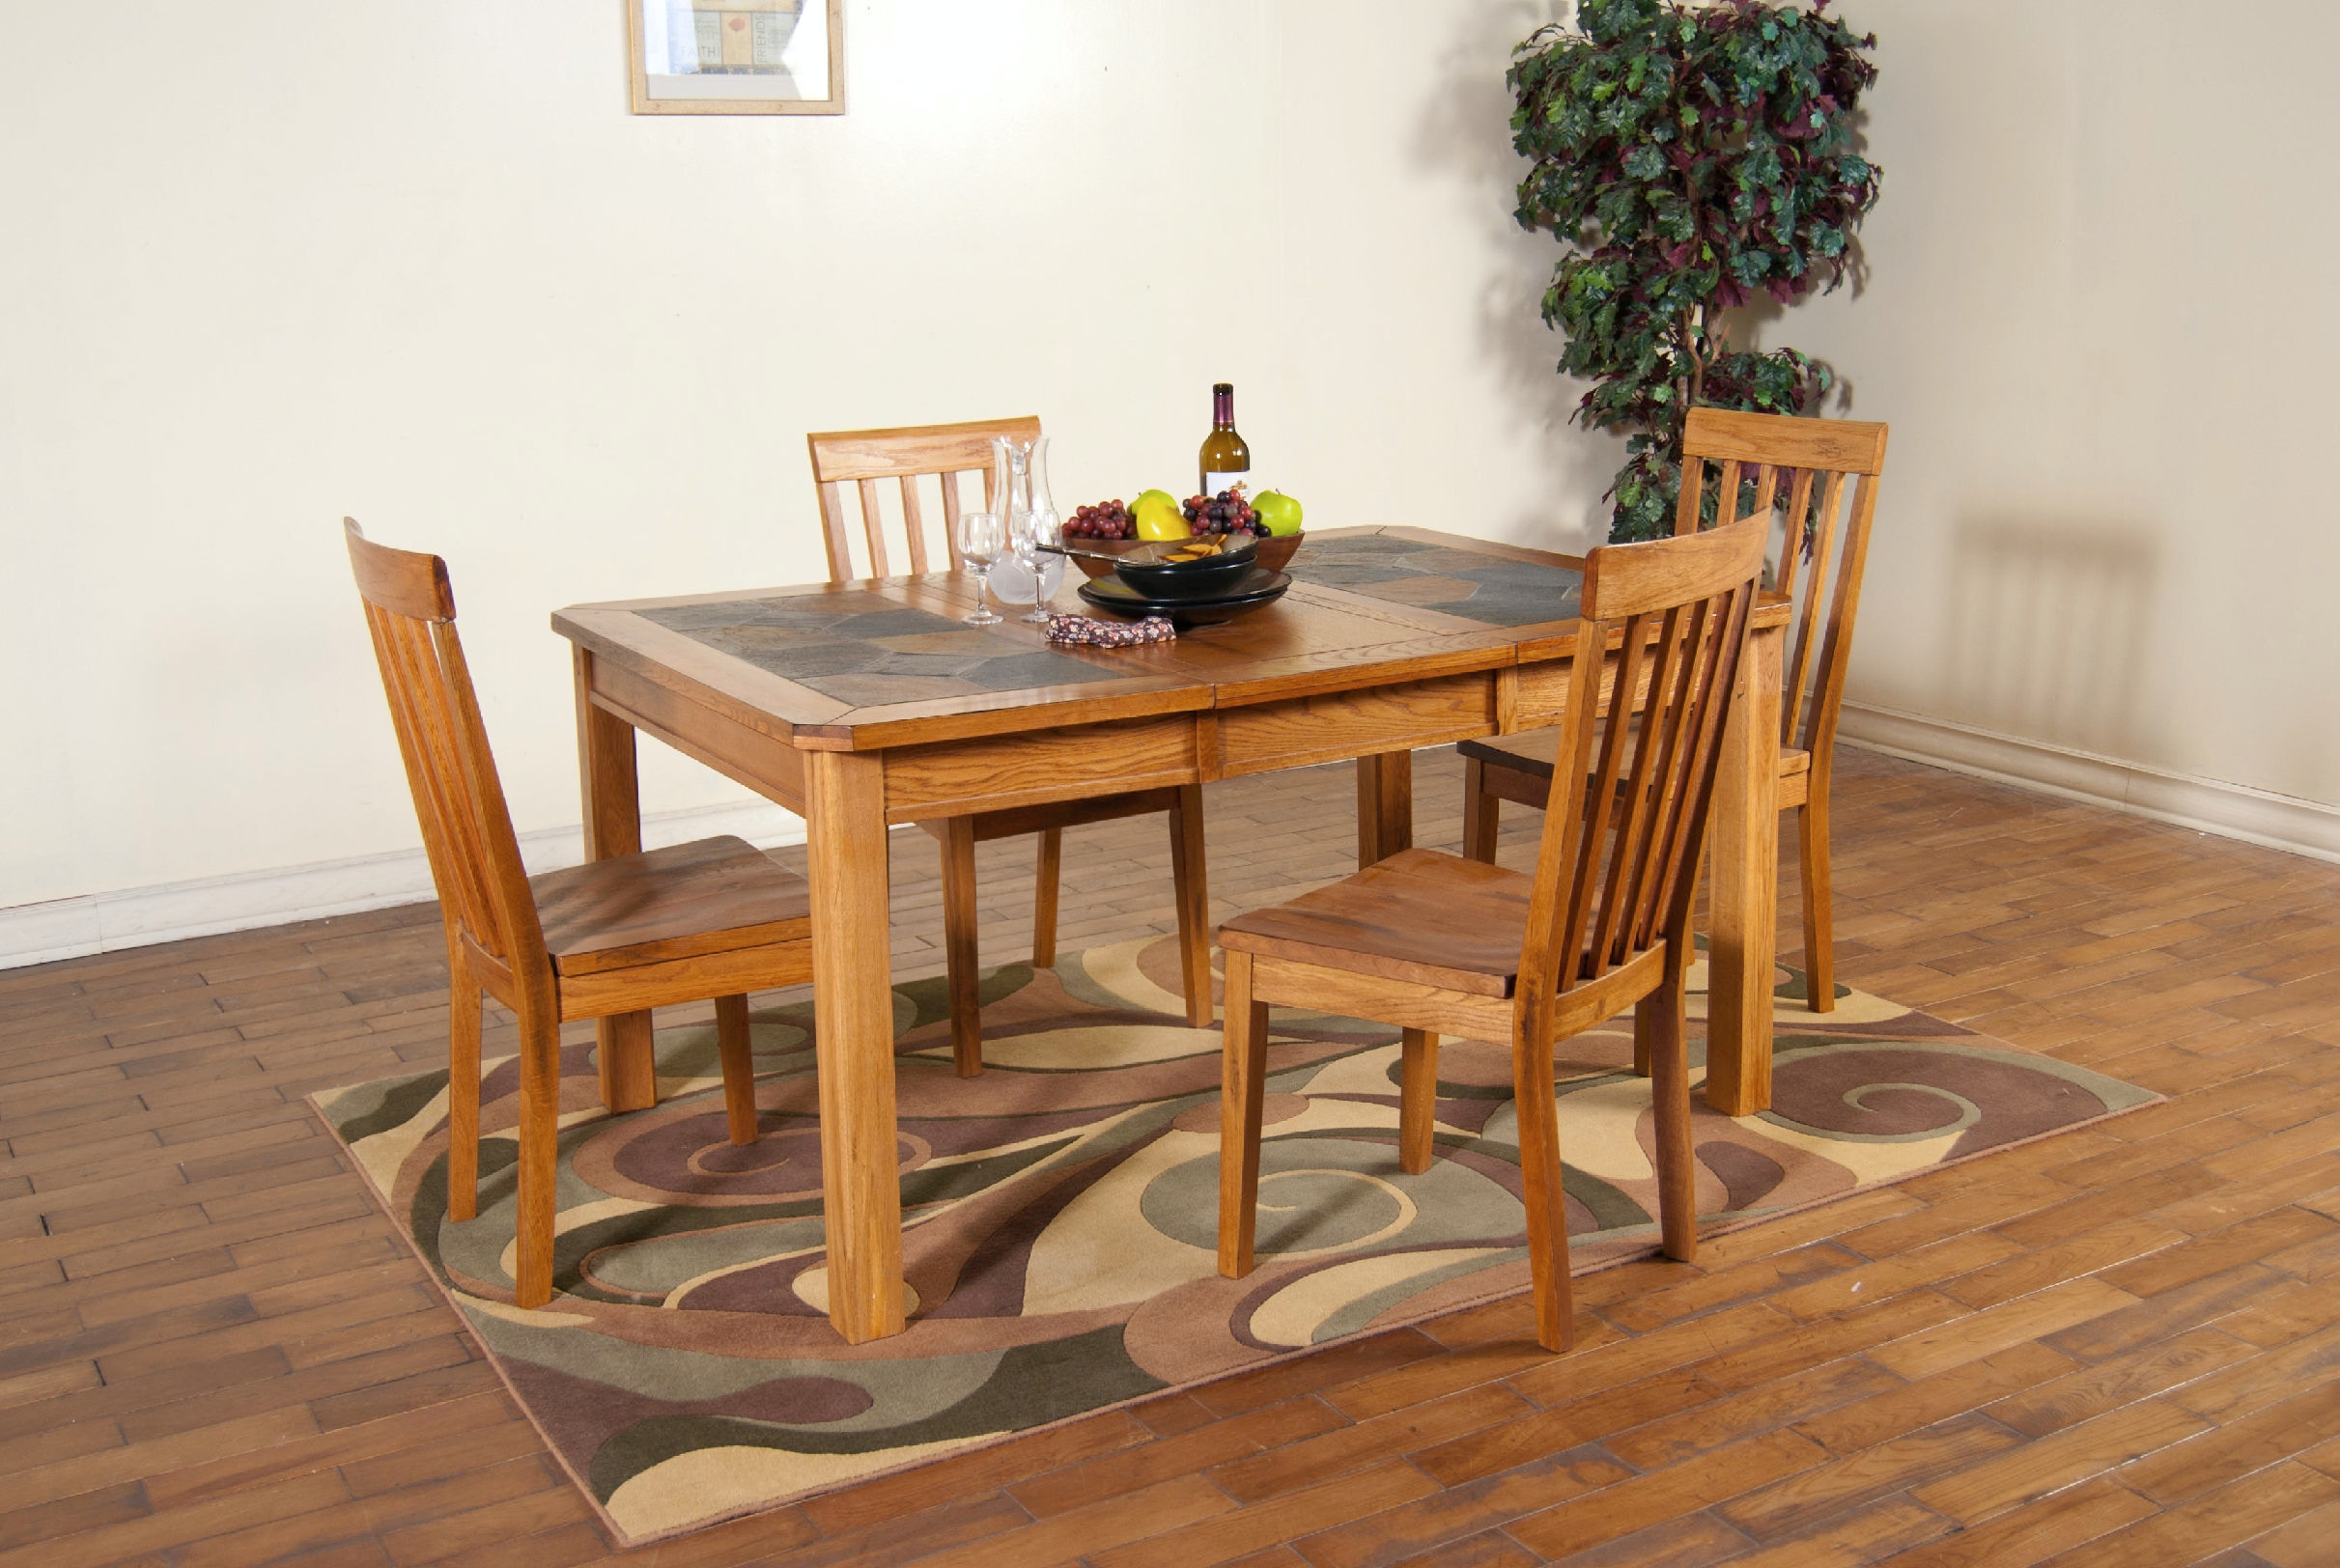 Sunny Designs Sedona Extension Table With Slate Top 1273/5PCSET